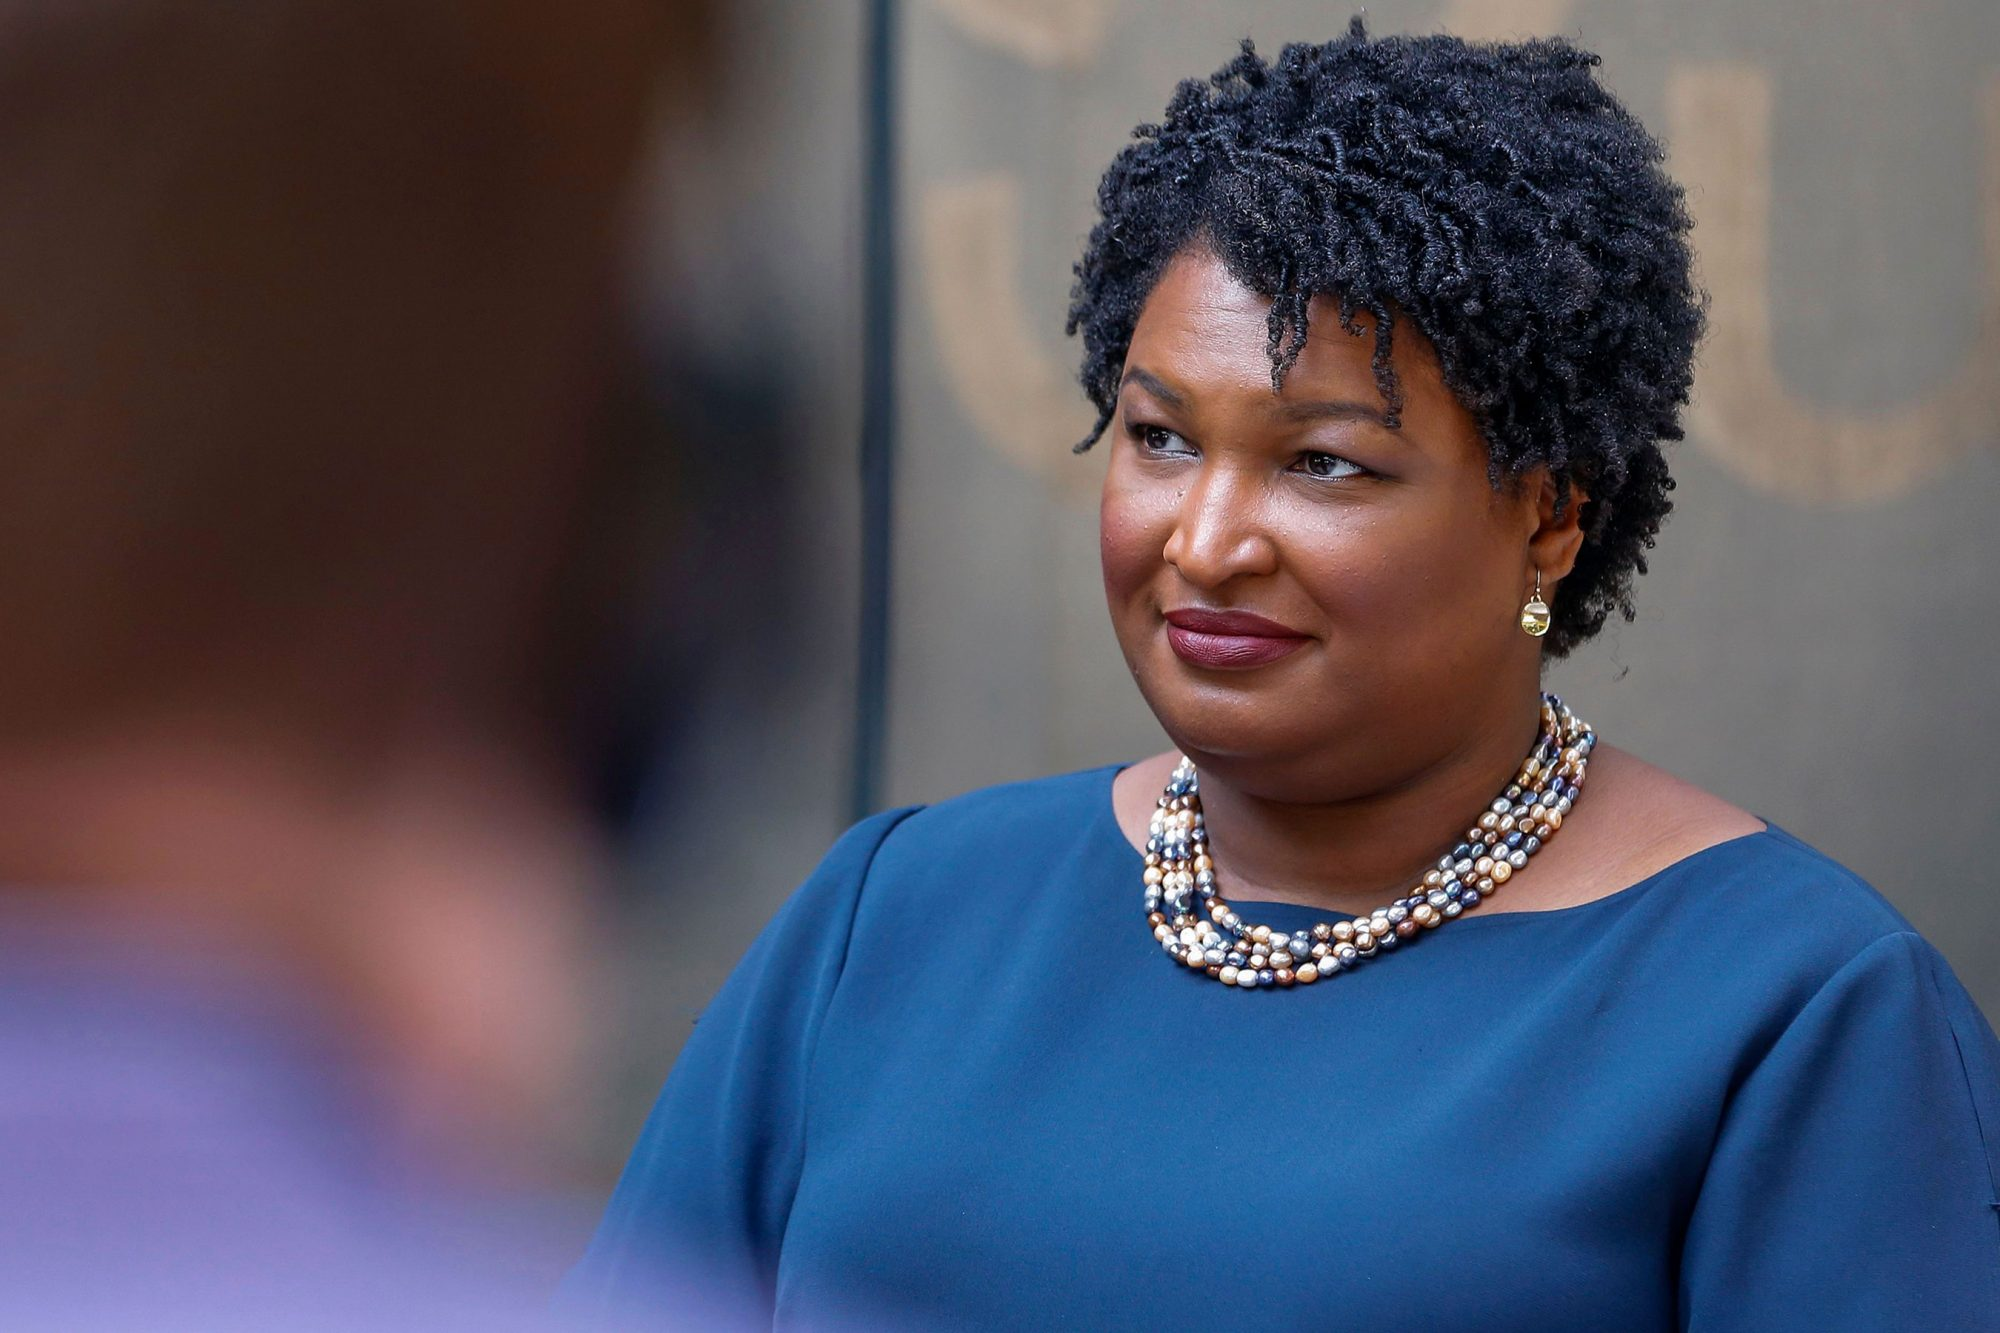 Democratic Nominee for Governor of Georgia Stacey Abrams, Atlanta, USA - 27 Jul 2018